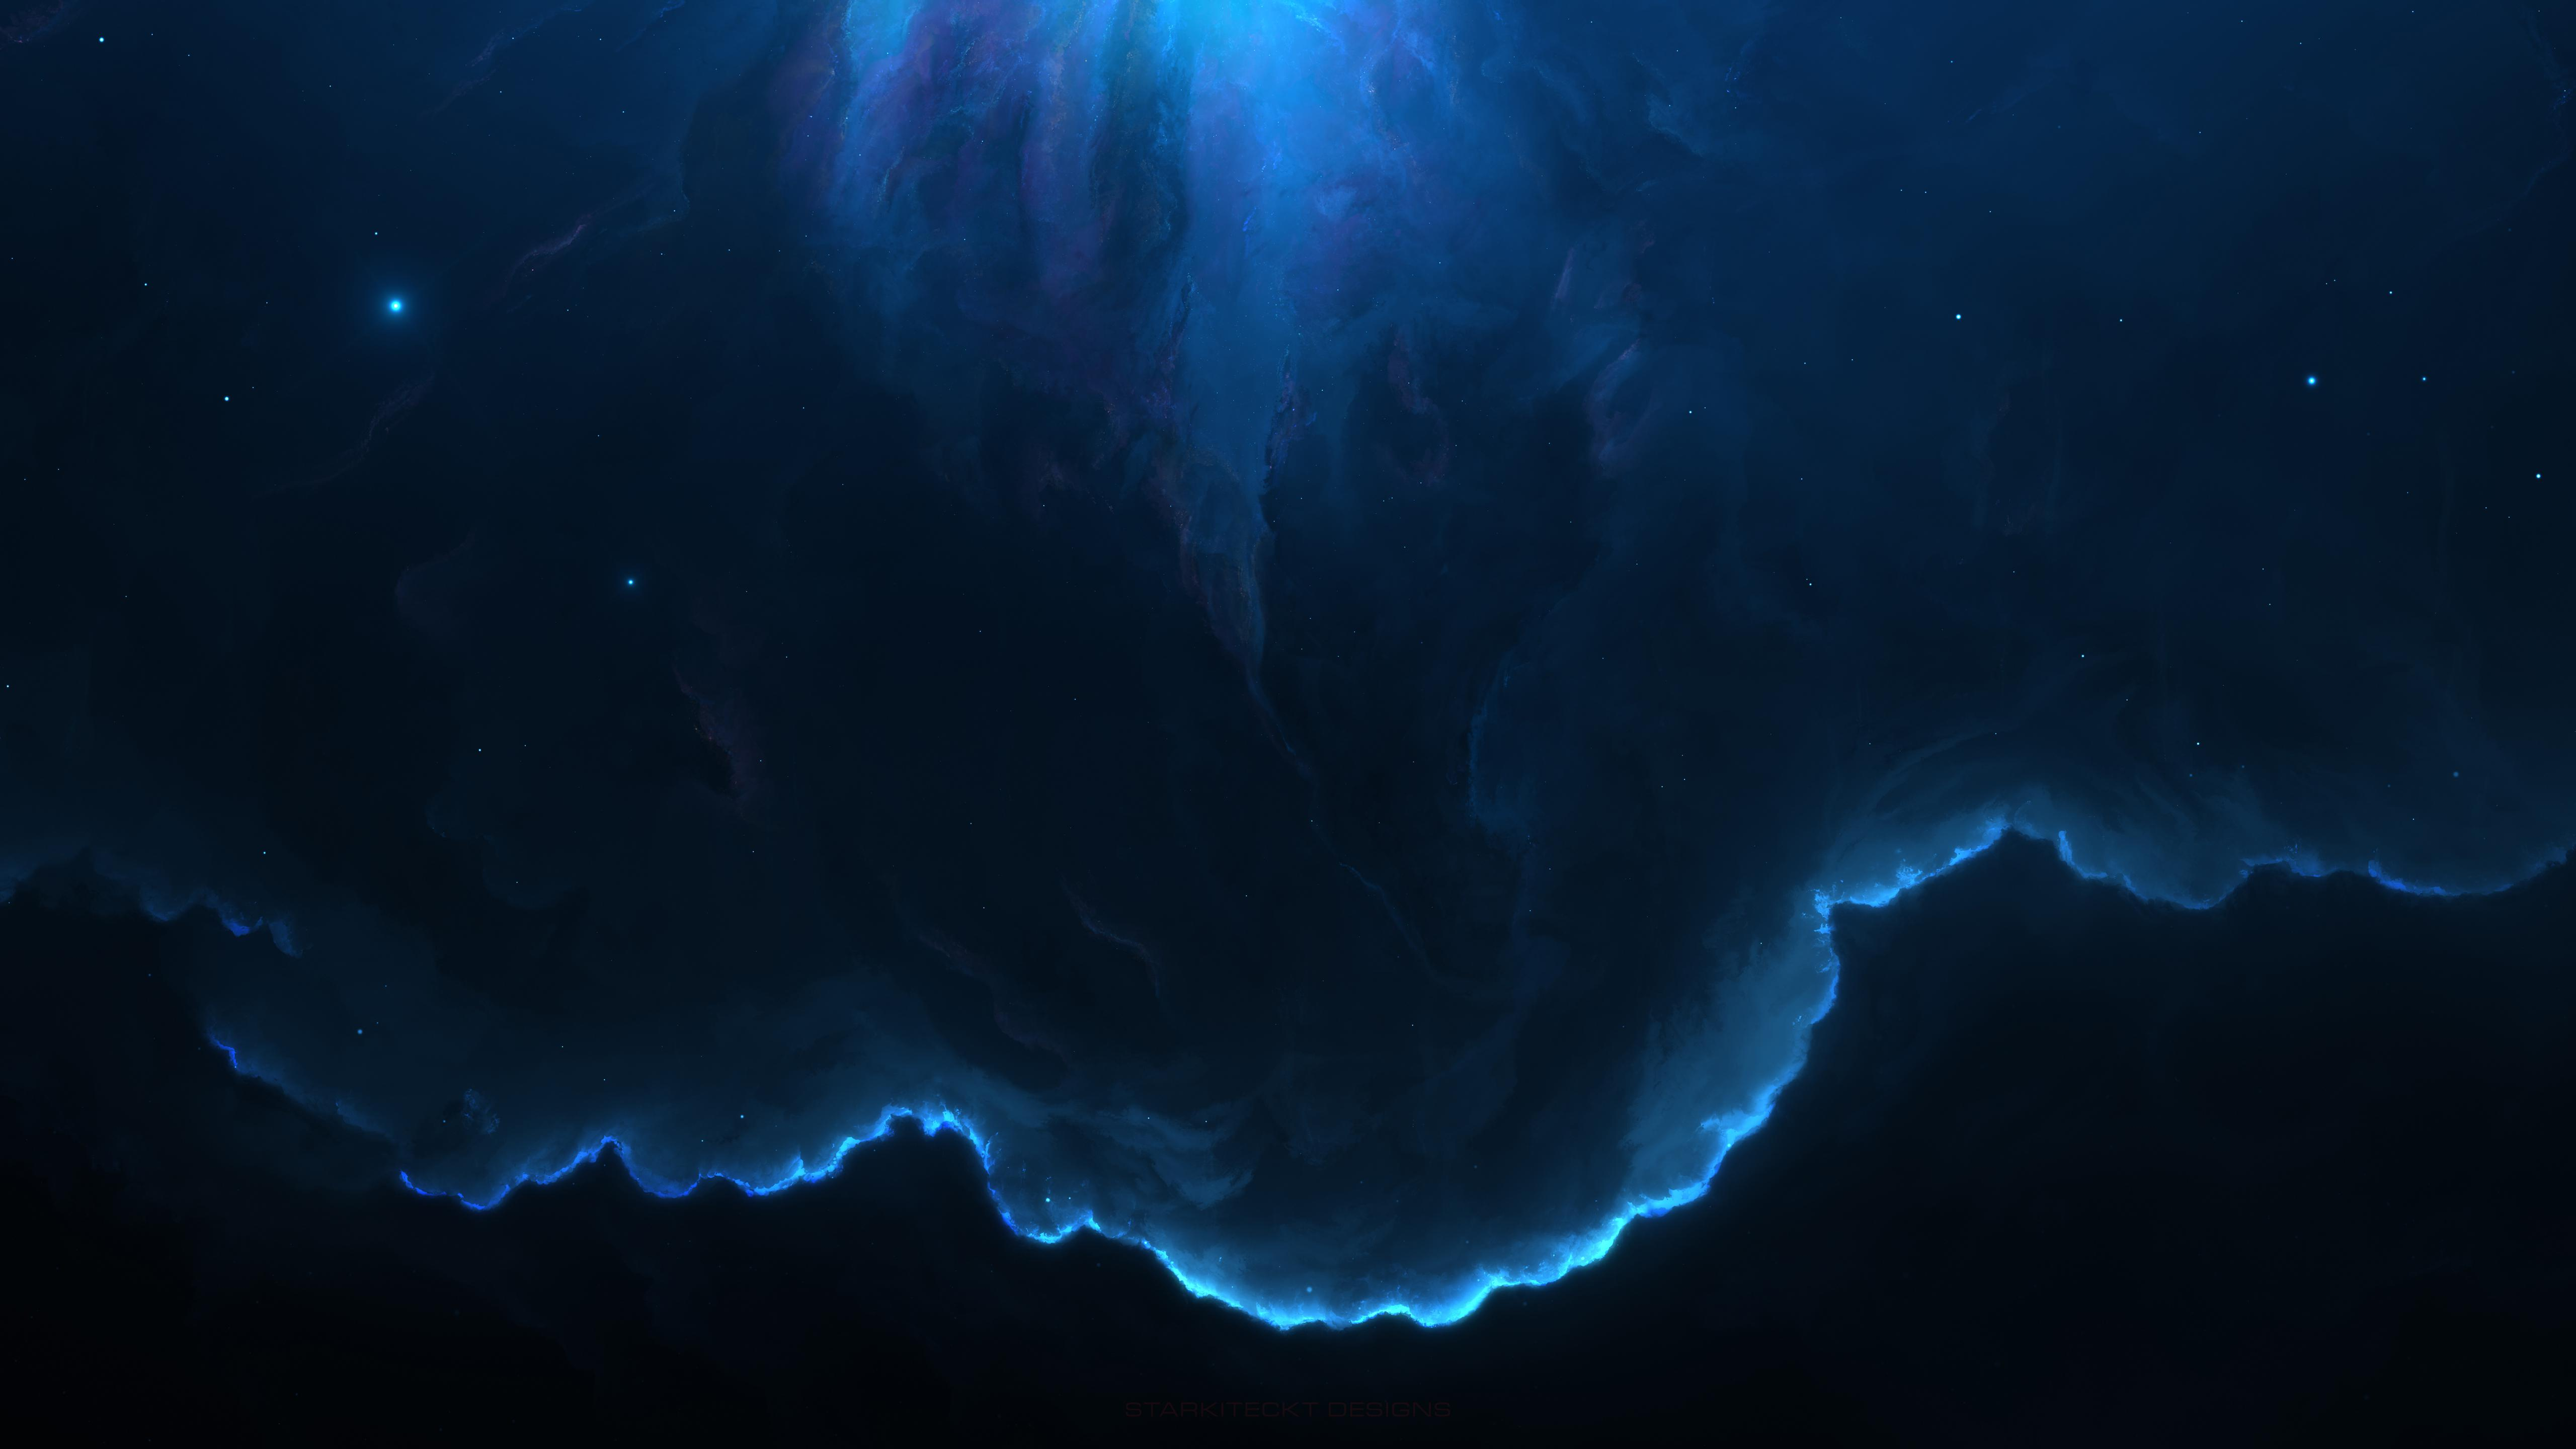 Blue Space Nebula 4K wallpaper